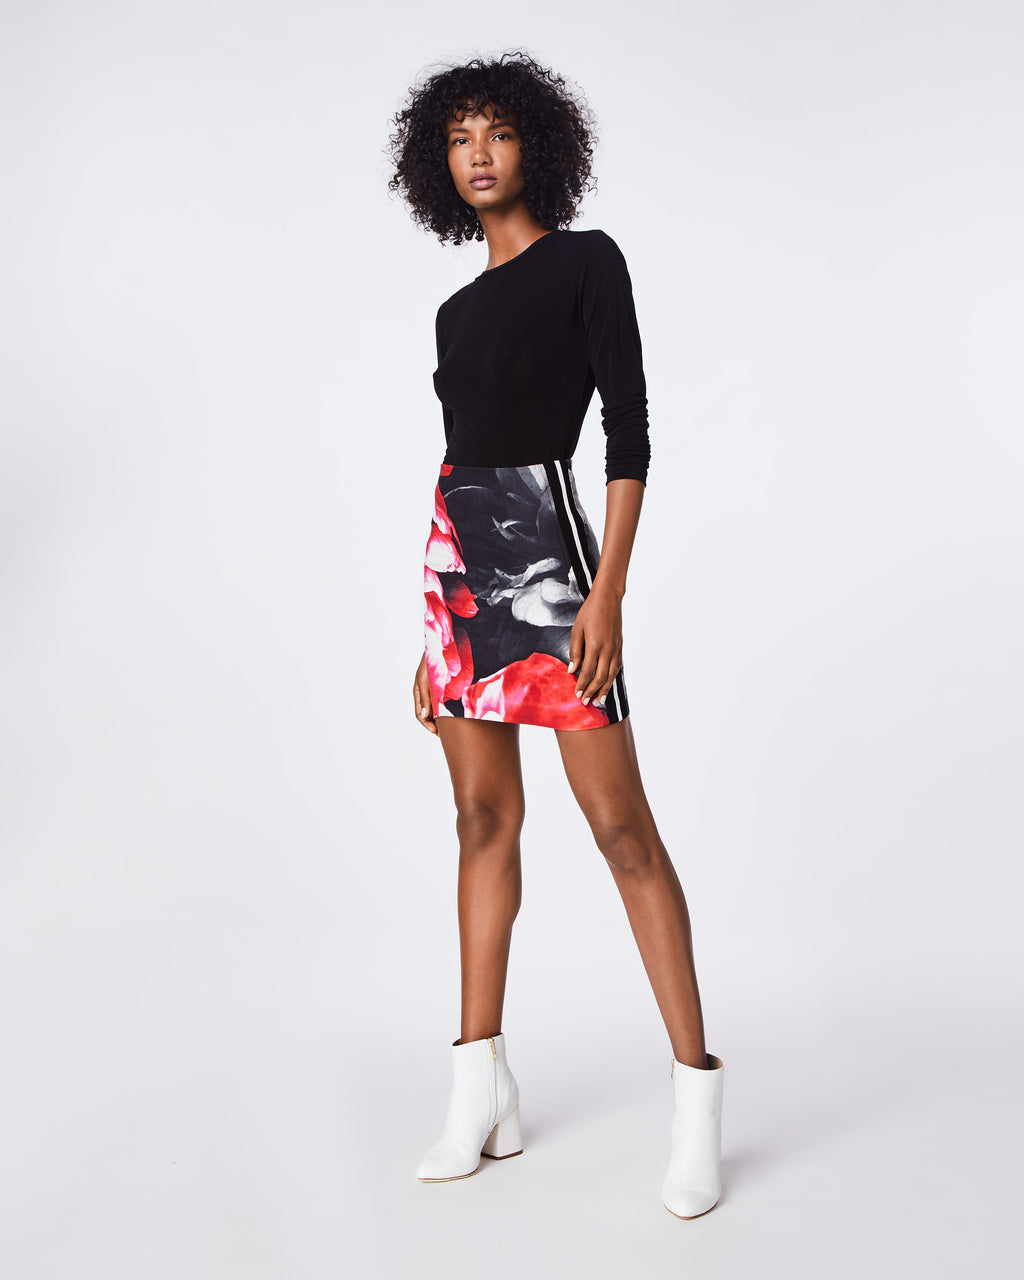 BD10260 - GIANT GARDEN MINI SKIRT - bottoms - skirts - A SPORTS-LUXE LOOK - THIS MINI SKIRT'S FLORAL PRINT AND STRIPED SIDE DETAIL MAKES IT A GO TO STYLE.